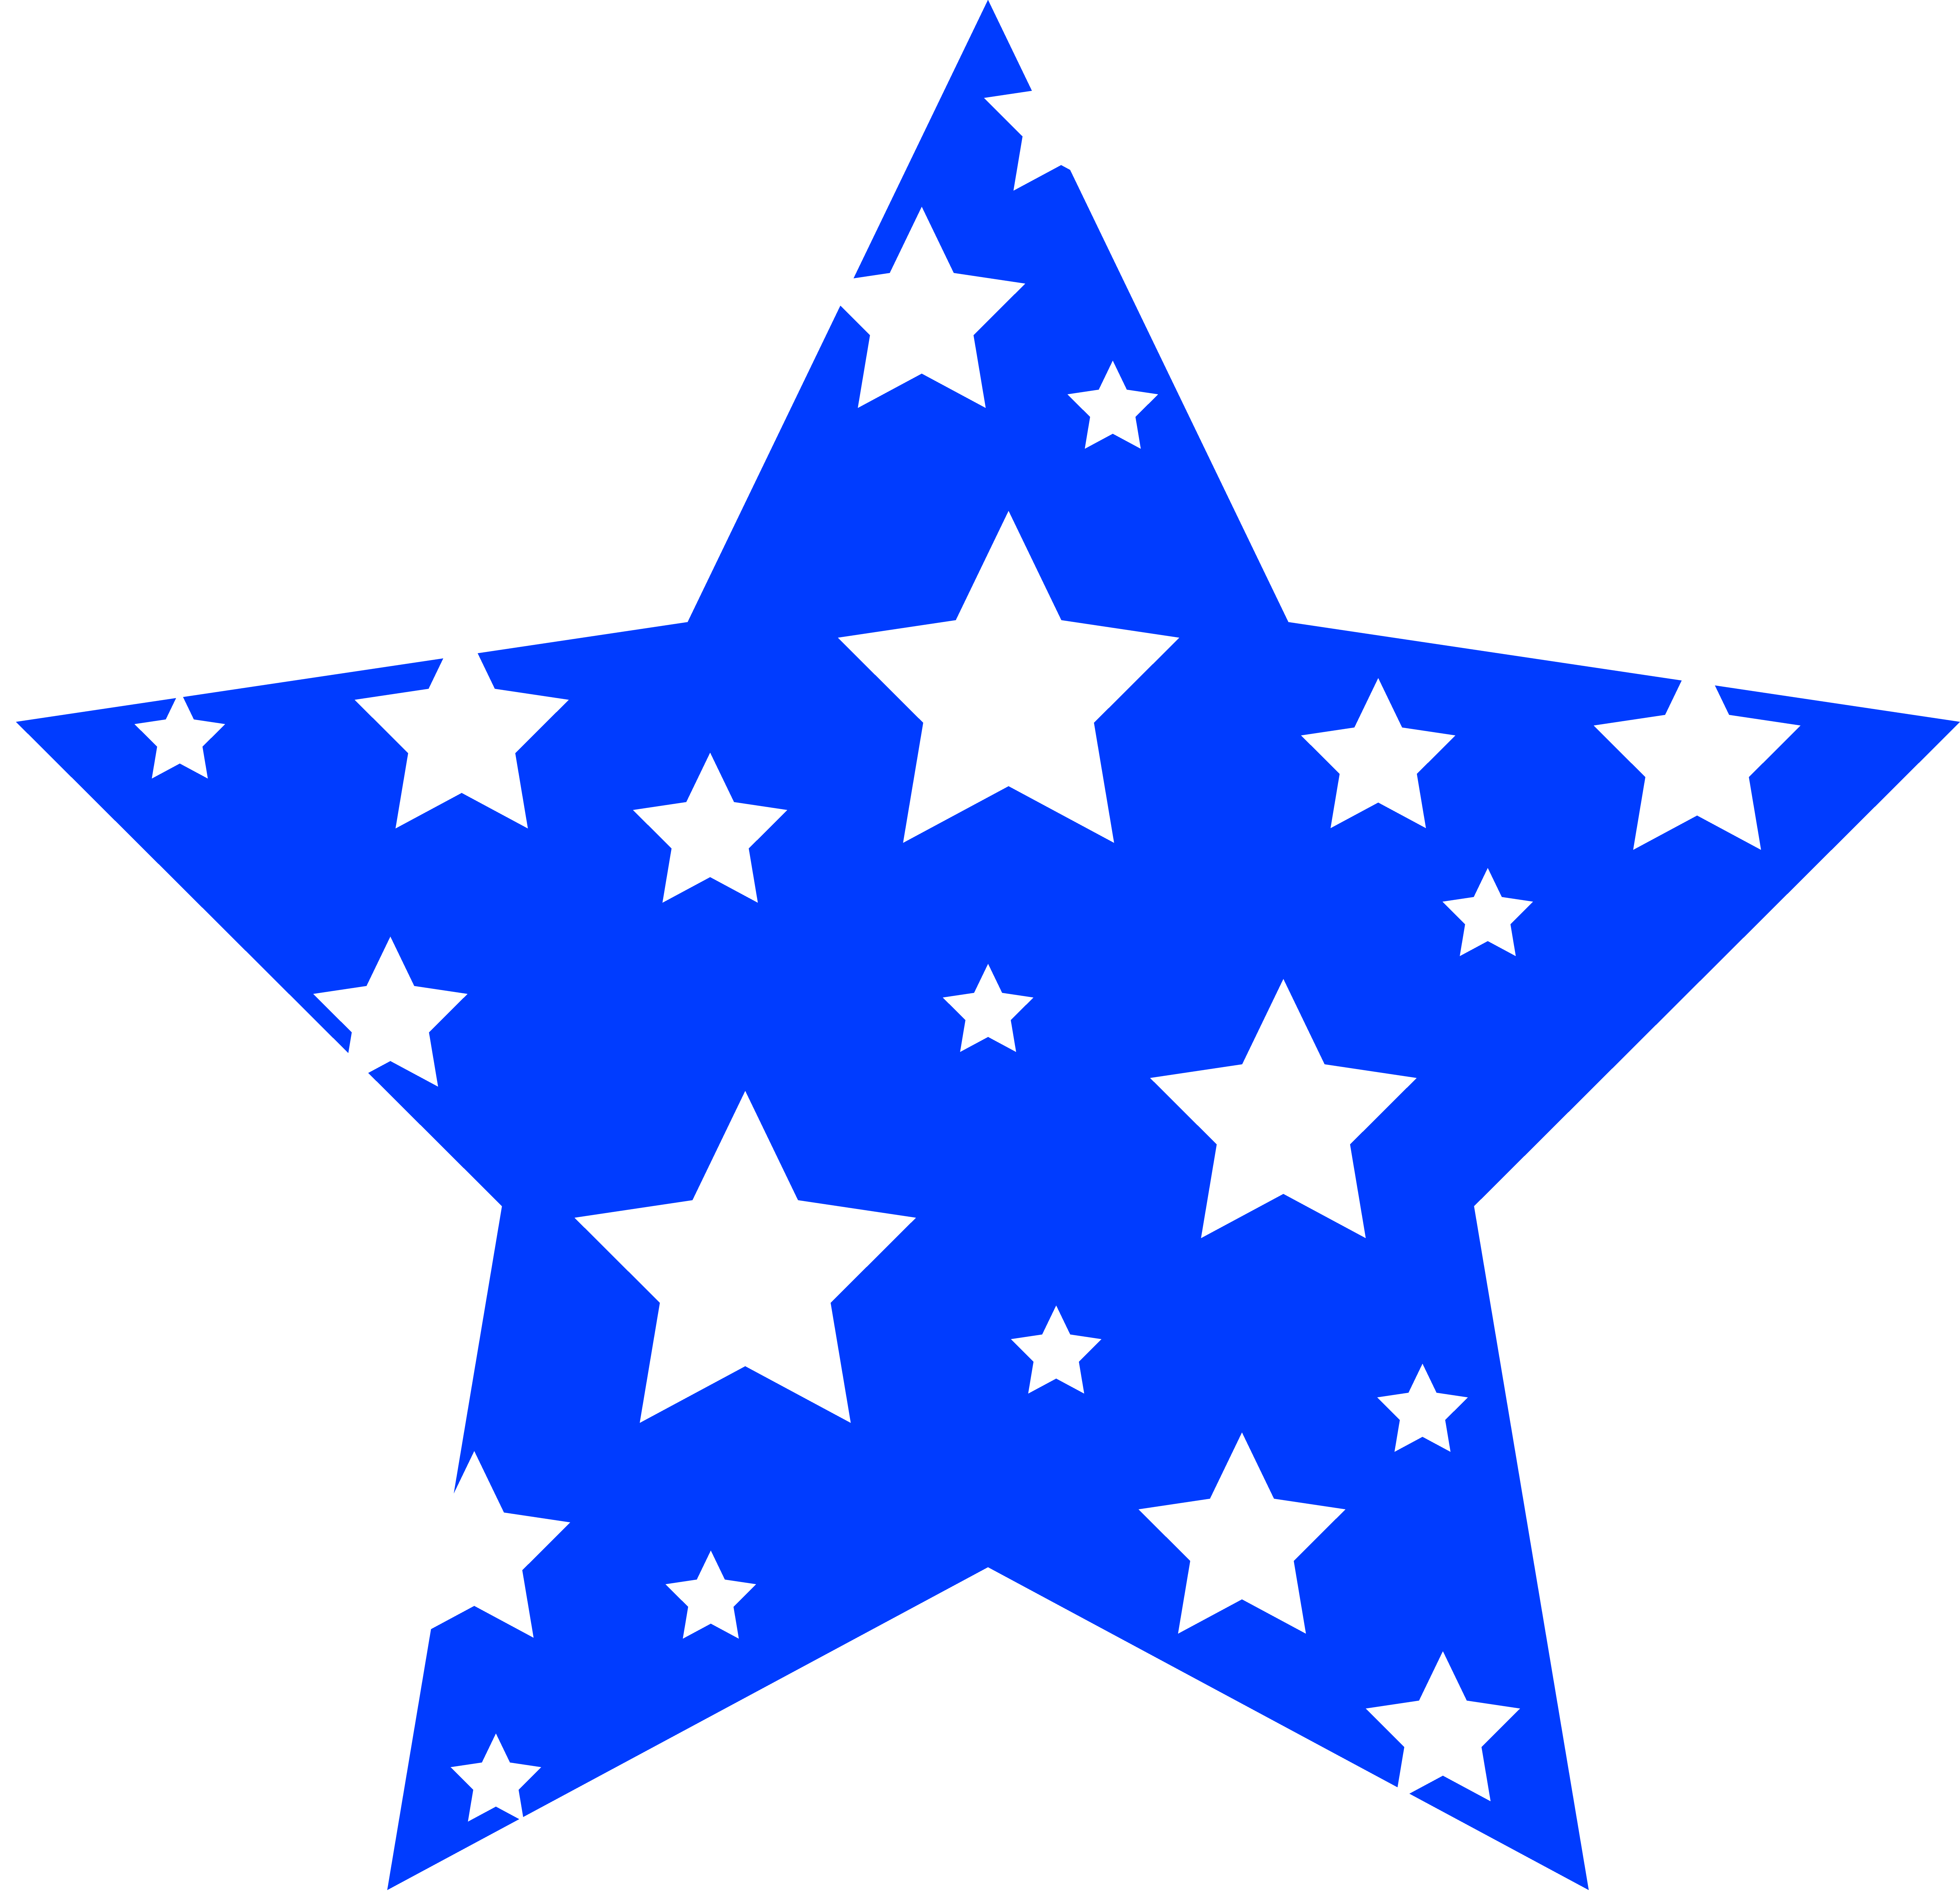 White Stars Clipart | Clipart Panda - Free Clipart Images